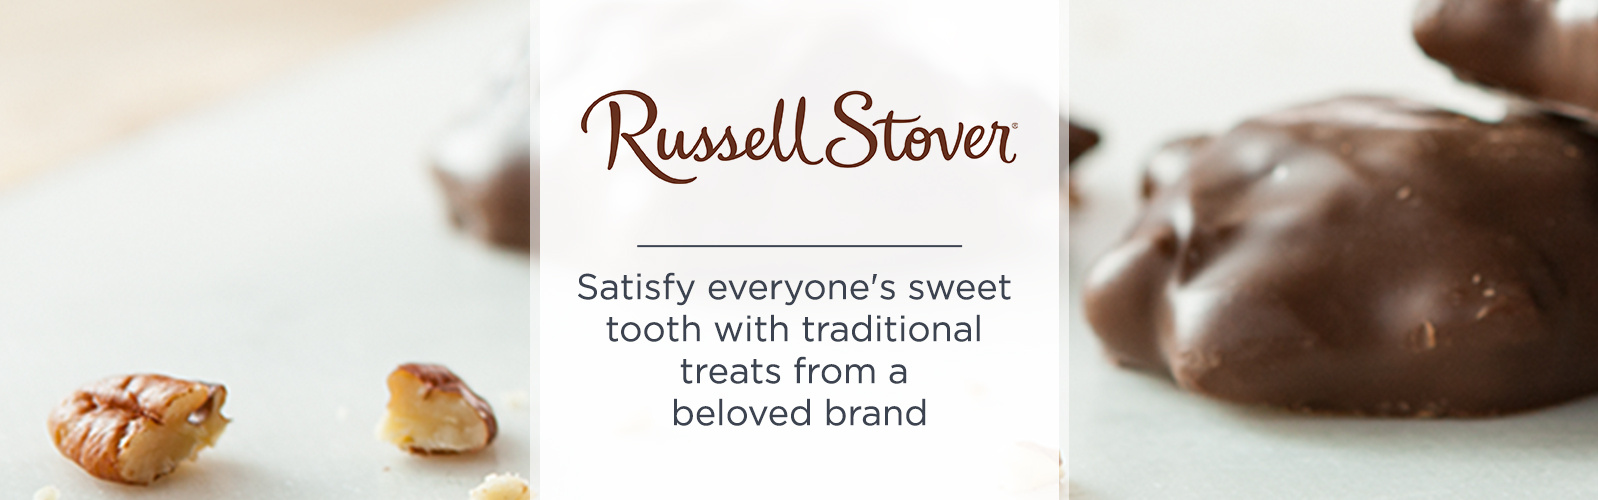 Russell Stover — Satisfy everyone's sweet tooth with traditional treats from a beloved brand